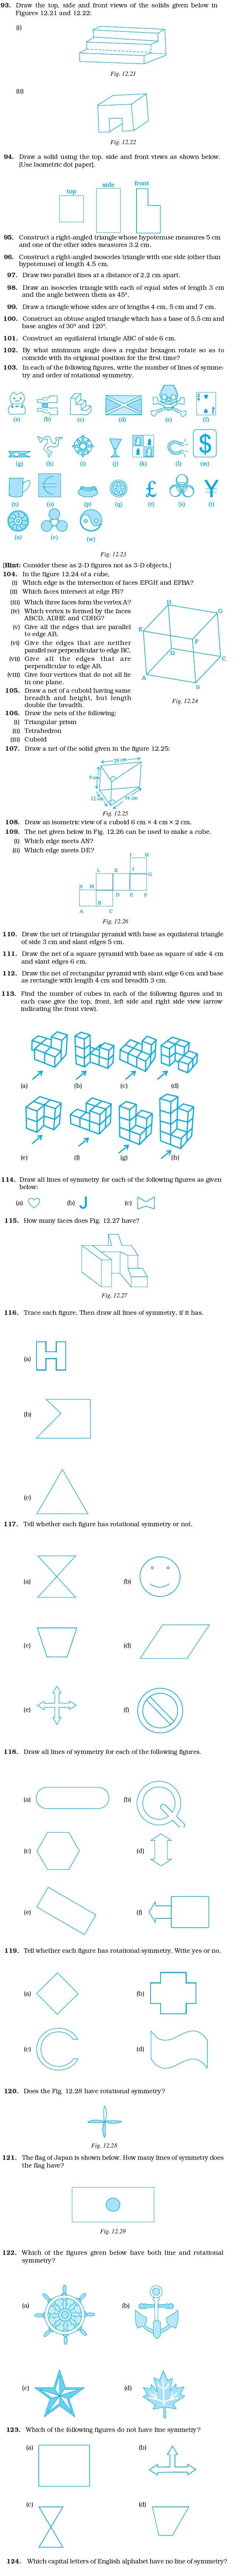 Class 7 Important Questions for Maths – Practical Geometry, Symmetry and Visualising Solid Shapes